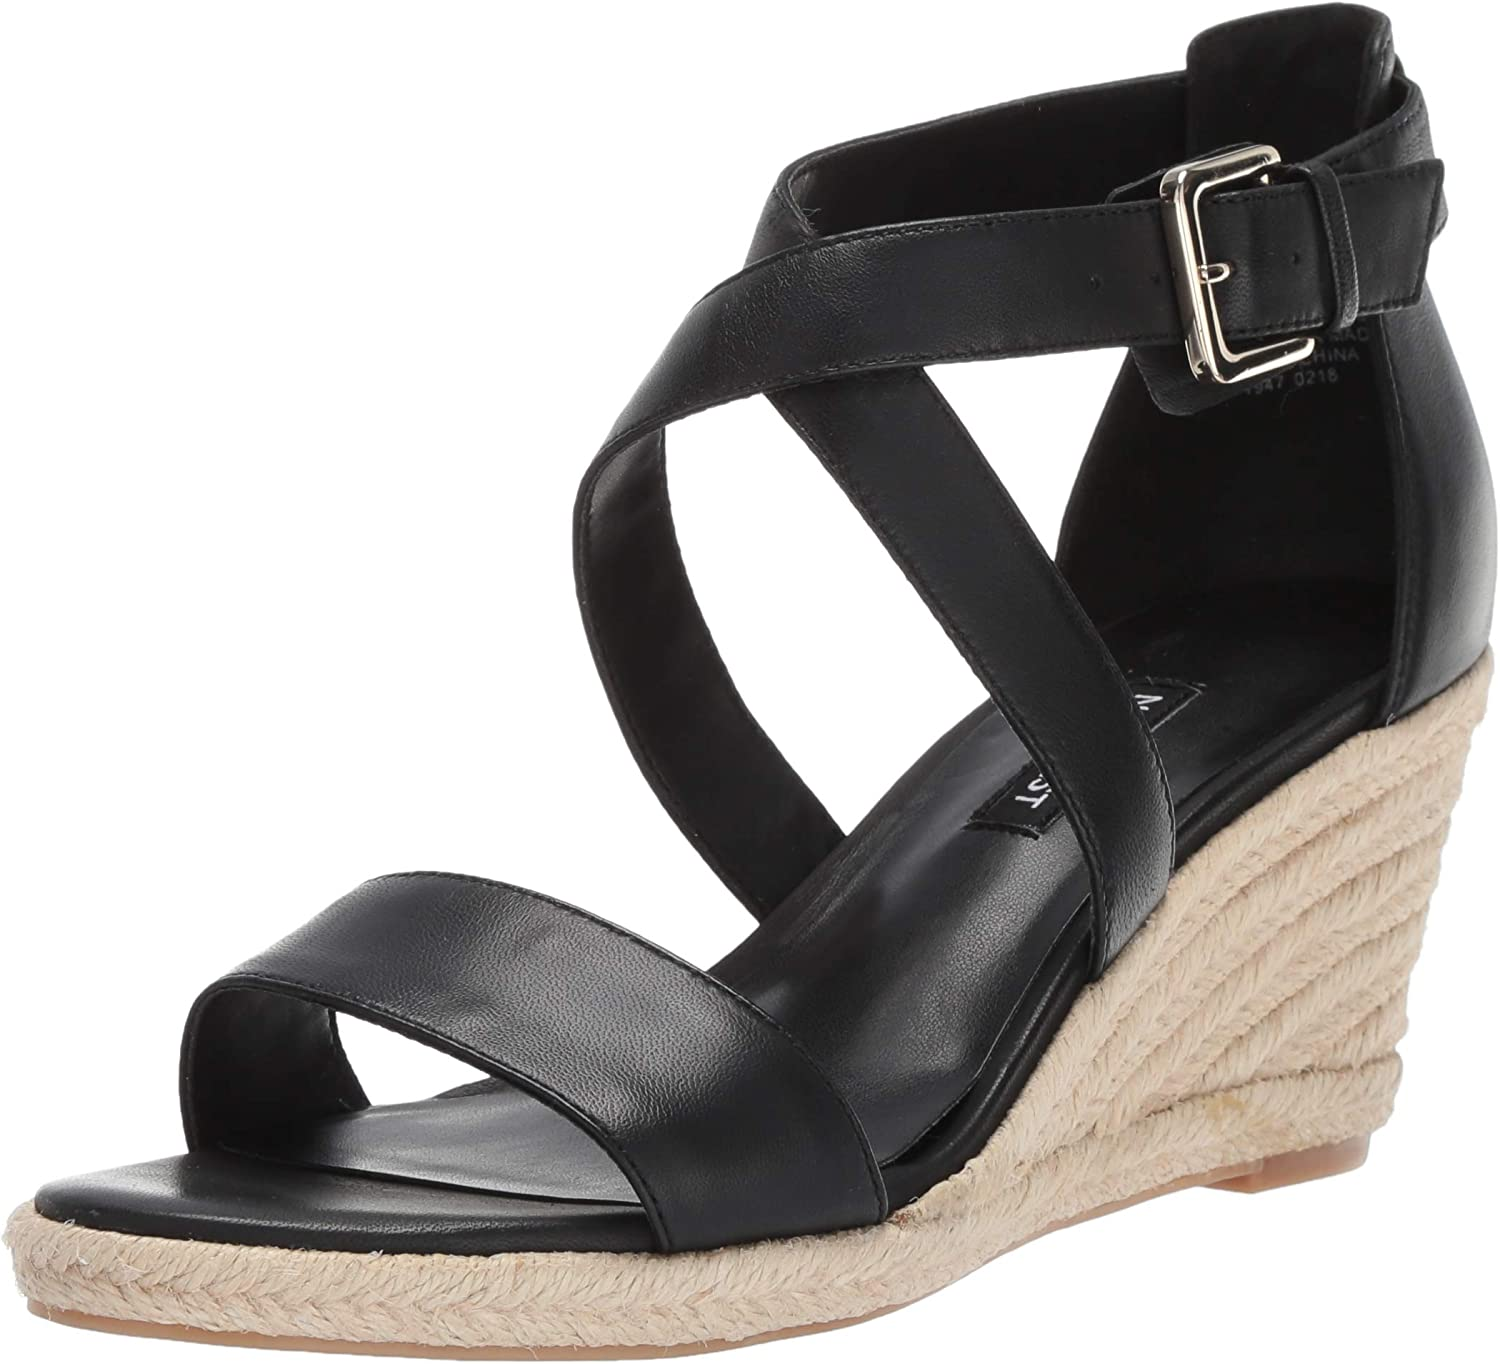 Nine West25033249 - - - Jorgapeach Leder Damen  eda563